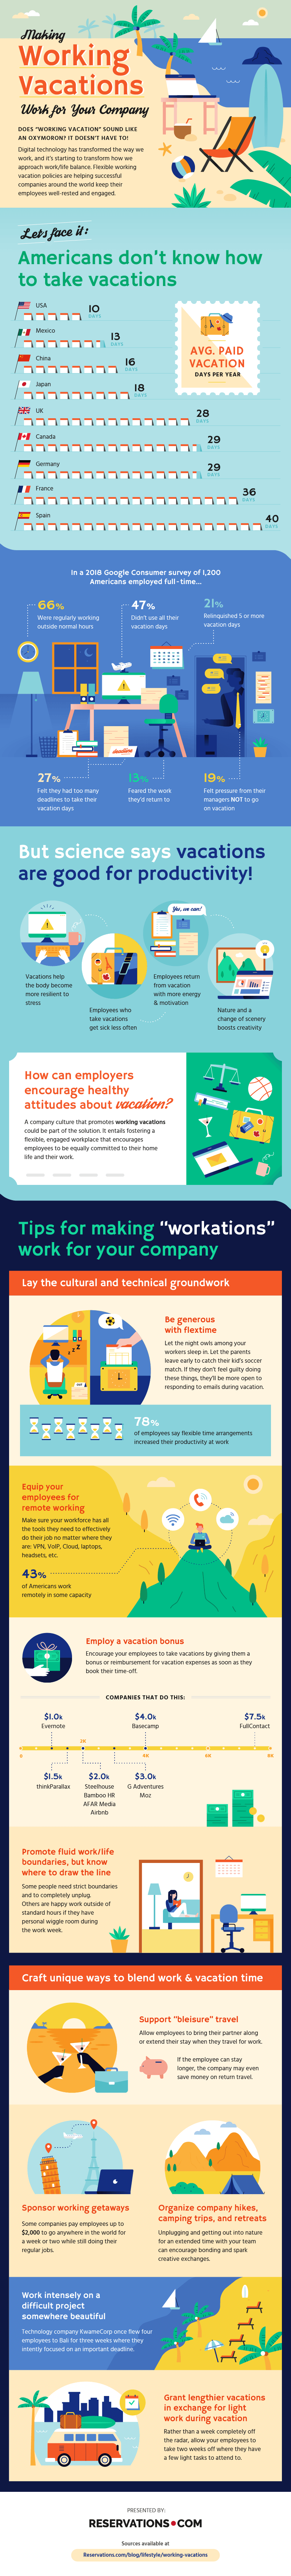 workcation infographic